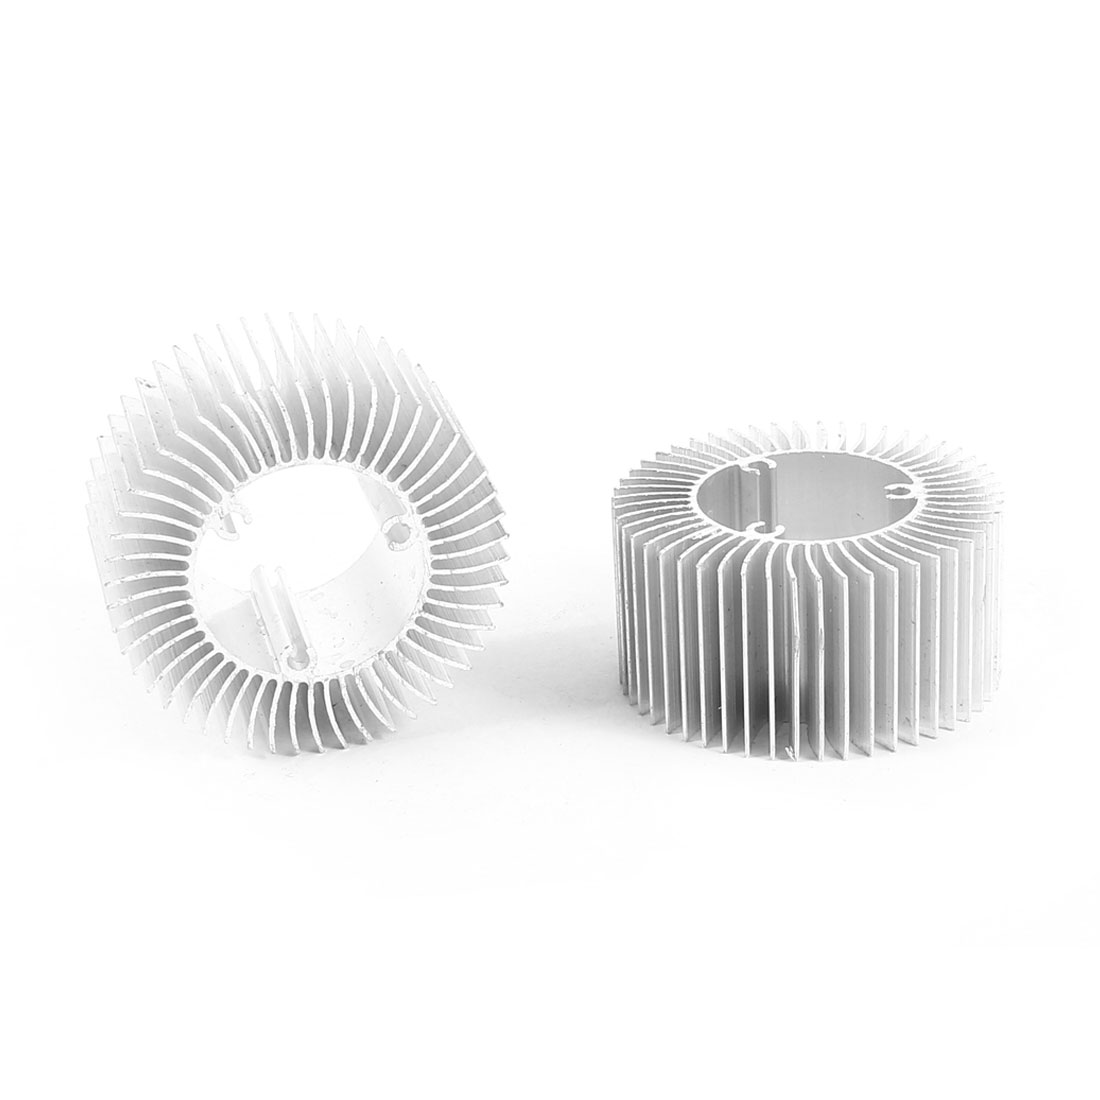 2 Pcs Round Shaped 50mm OD 28.5mm ID 25mm Height LED Light Heatsinks Cooling Fin